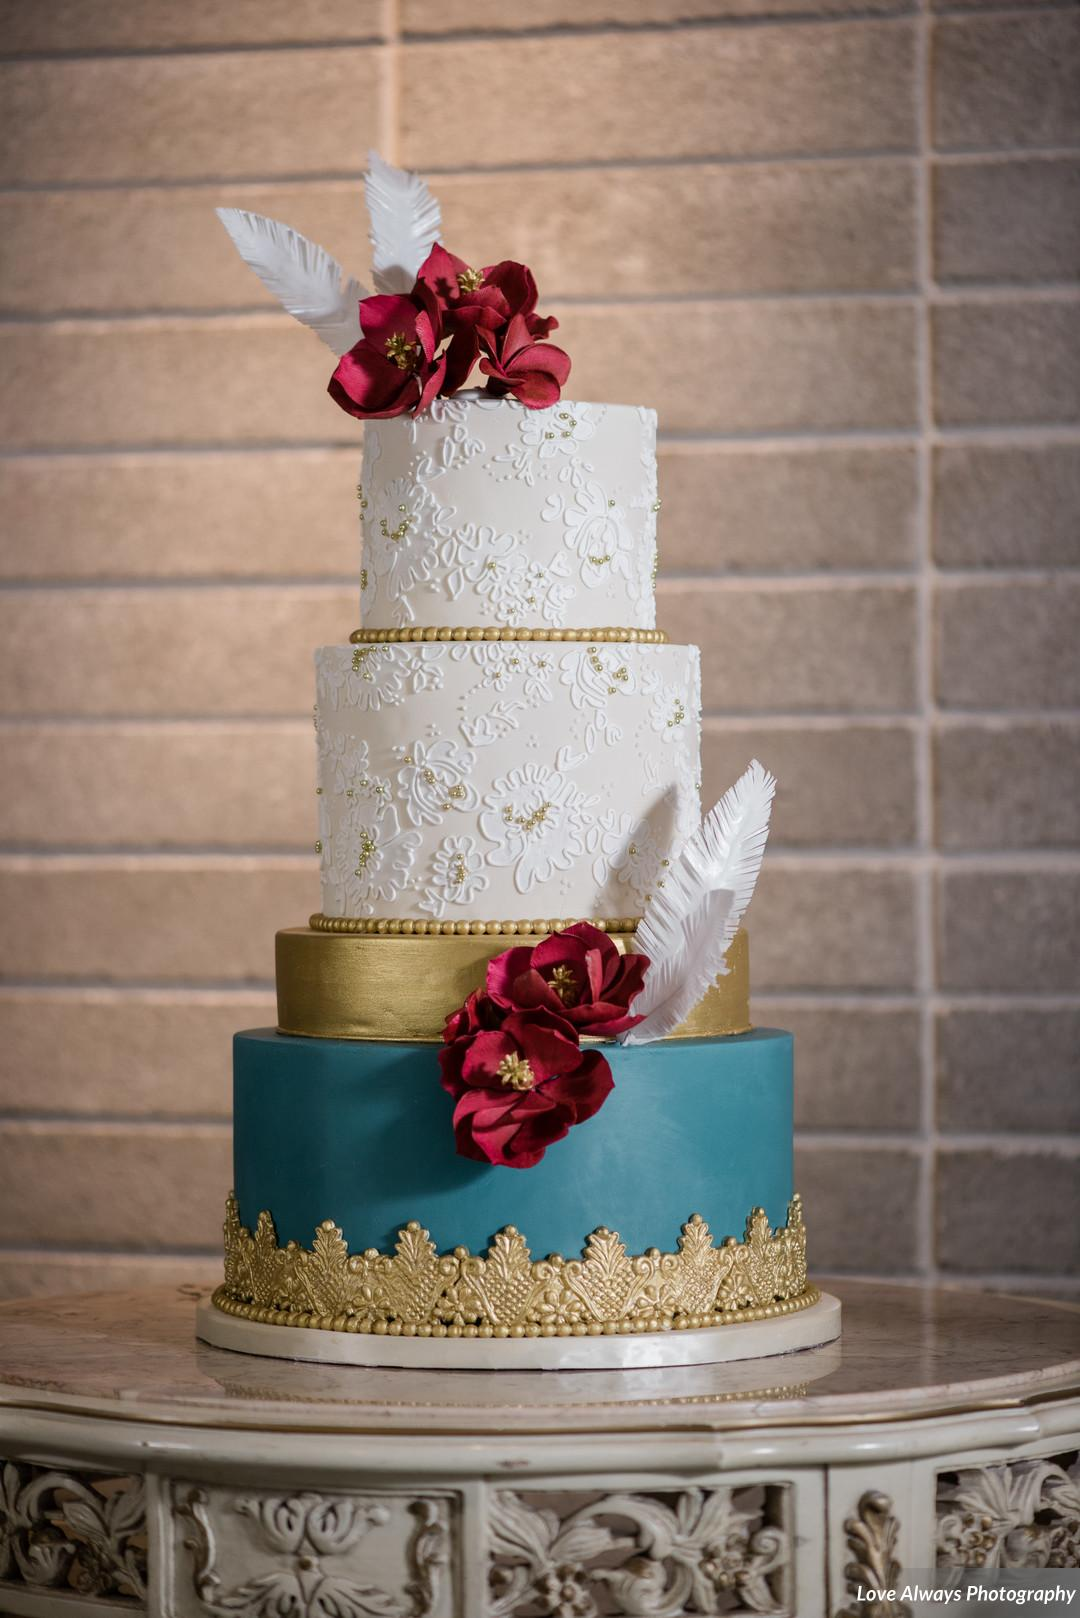 elegant teal, gold and ivory wedding cake with burgundy flower and white feather detail - by la rose bakery milton